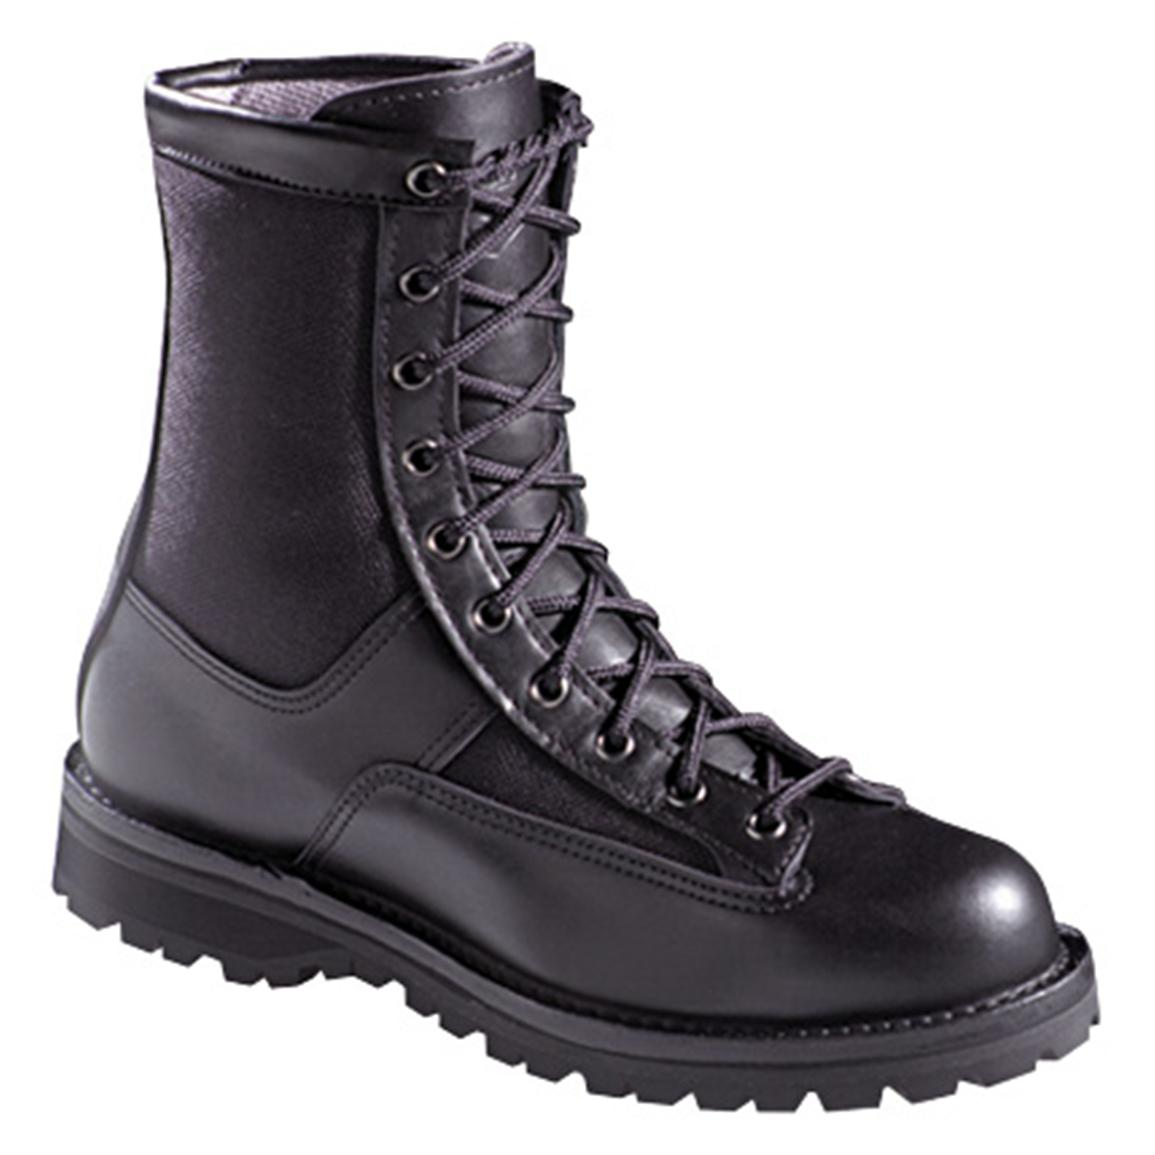 "Men's 8"" Danner® Acadia Steel Toe Uniform Combat Boots"